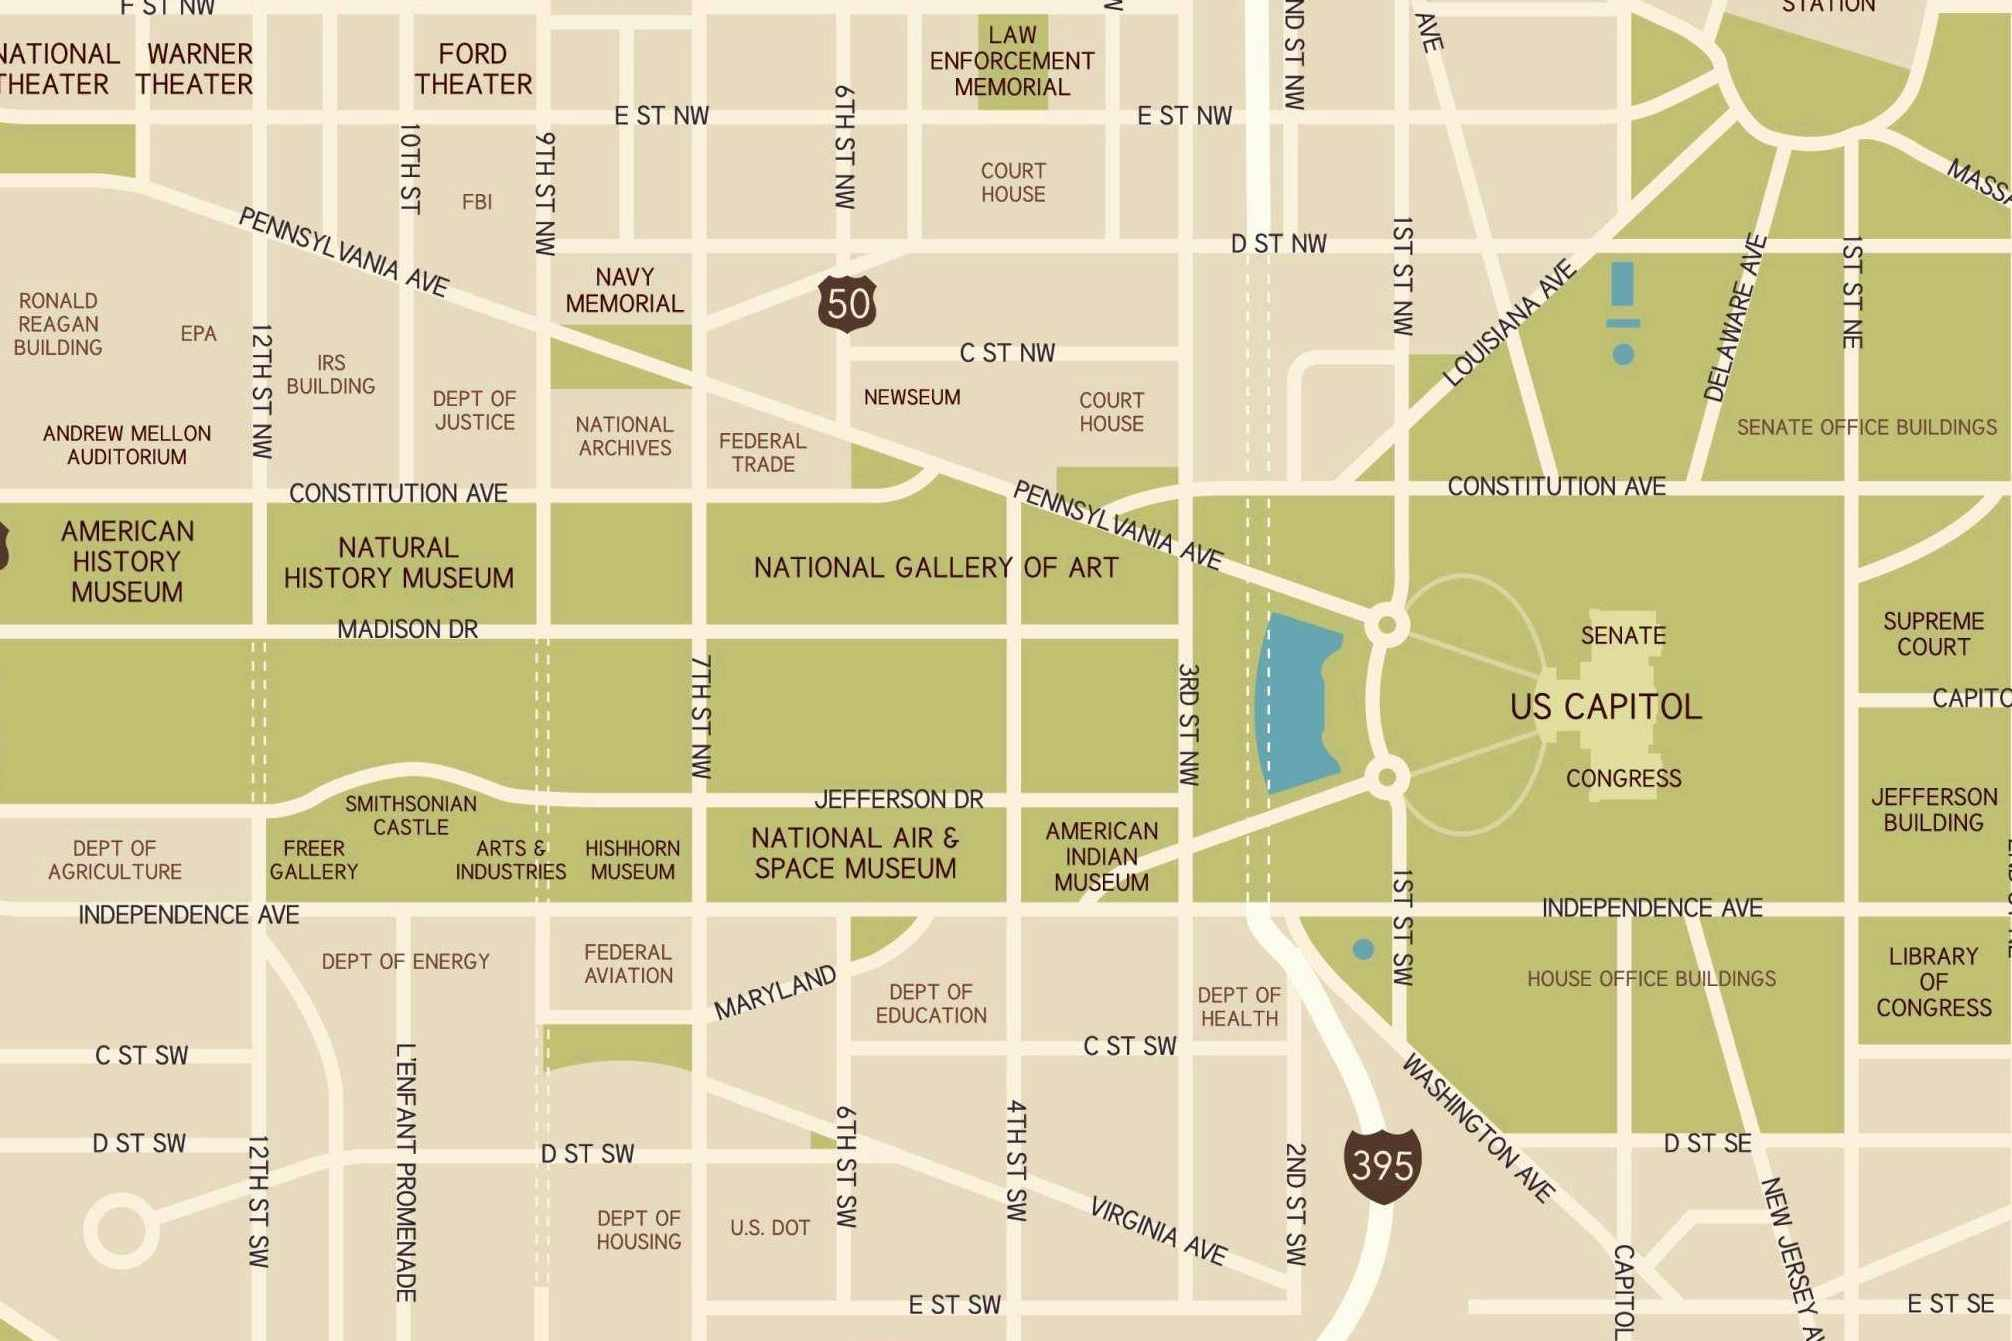 Mall Dc Map.Washington D C National Mall Maps Directions And Information